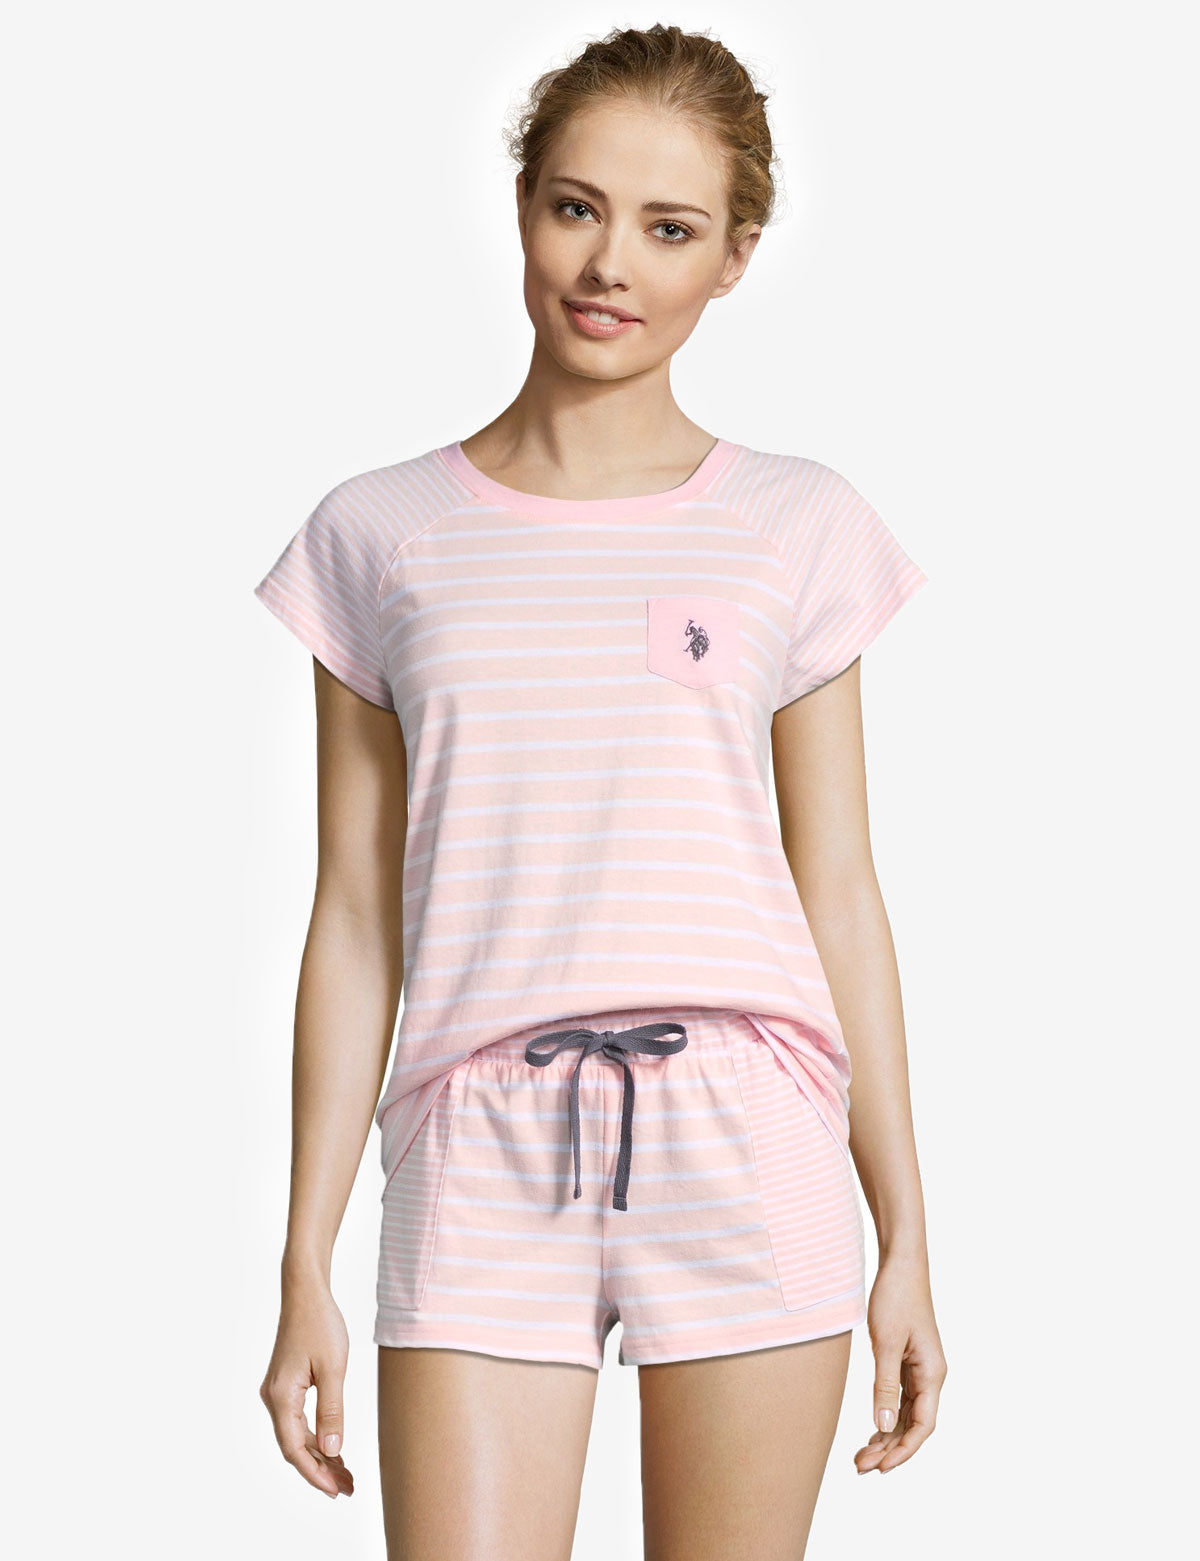 TEE SHIRT & SHORTS SET - U.S. Polo Assn.